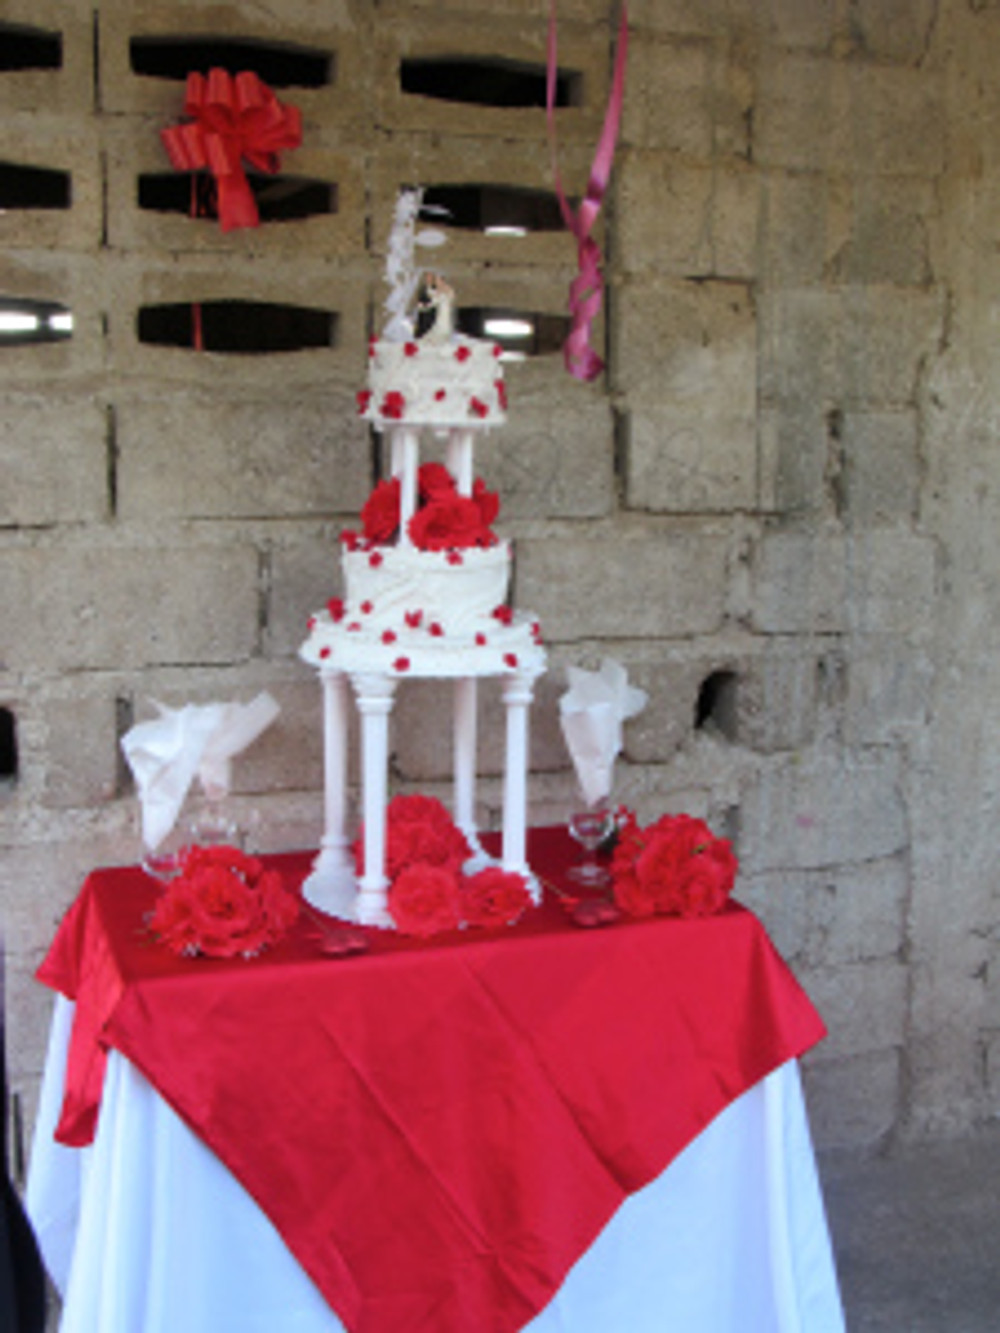 One of the tier cakes prepared by the students of Grace TRADE School!